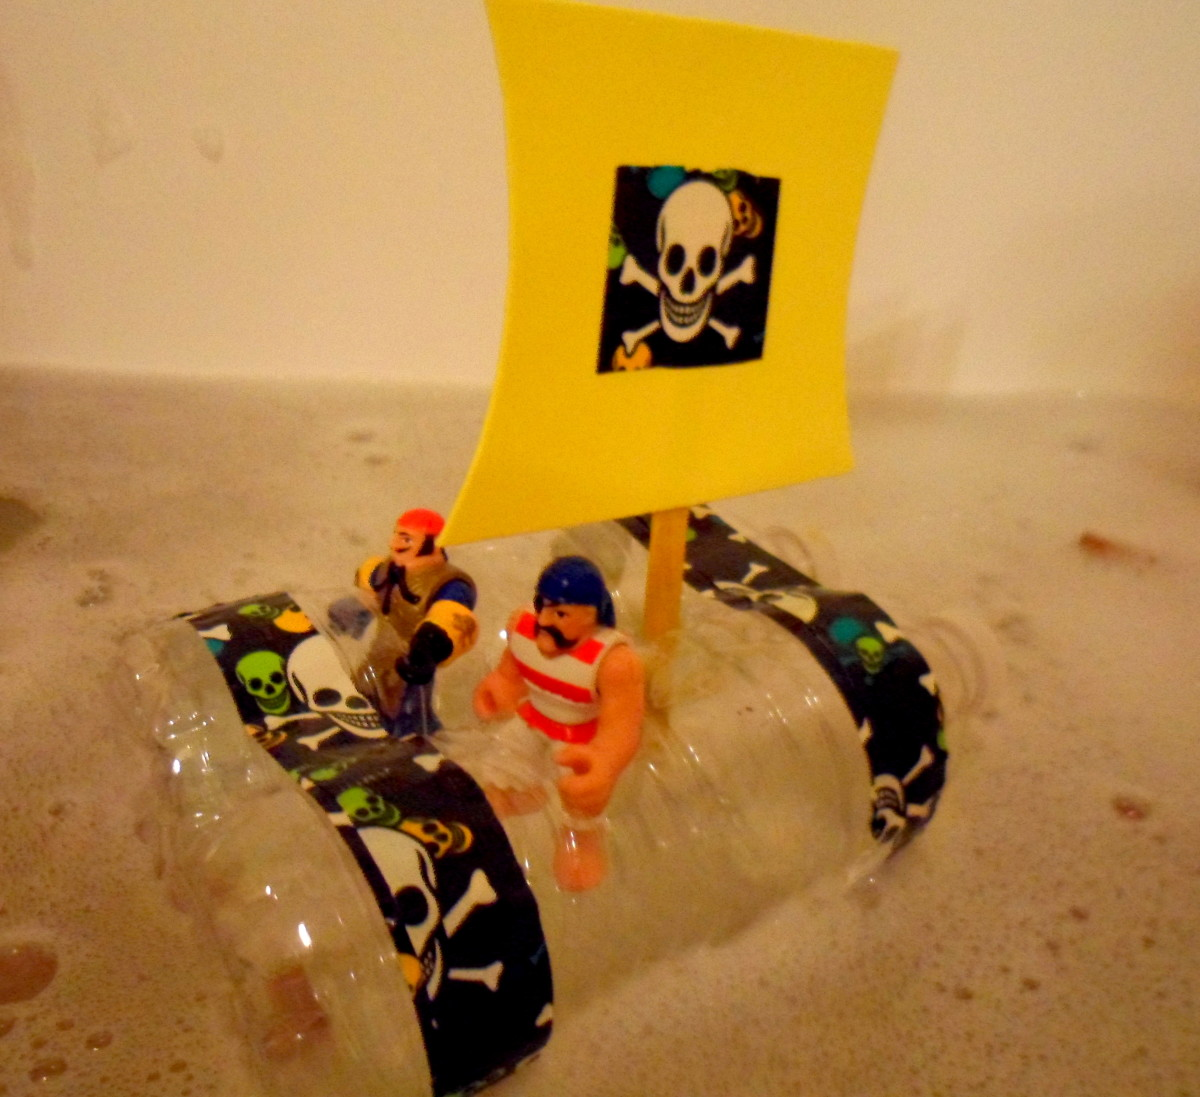 Our finished pirate ship for the bath tub.